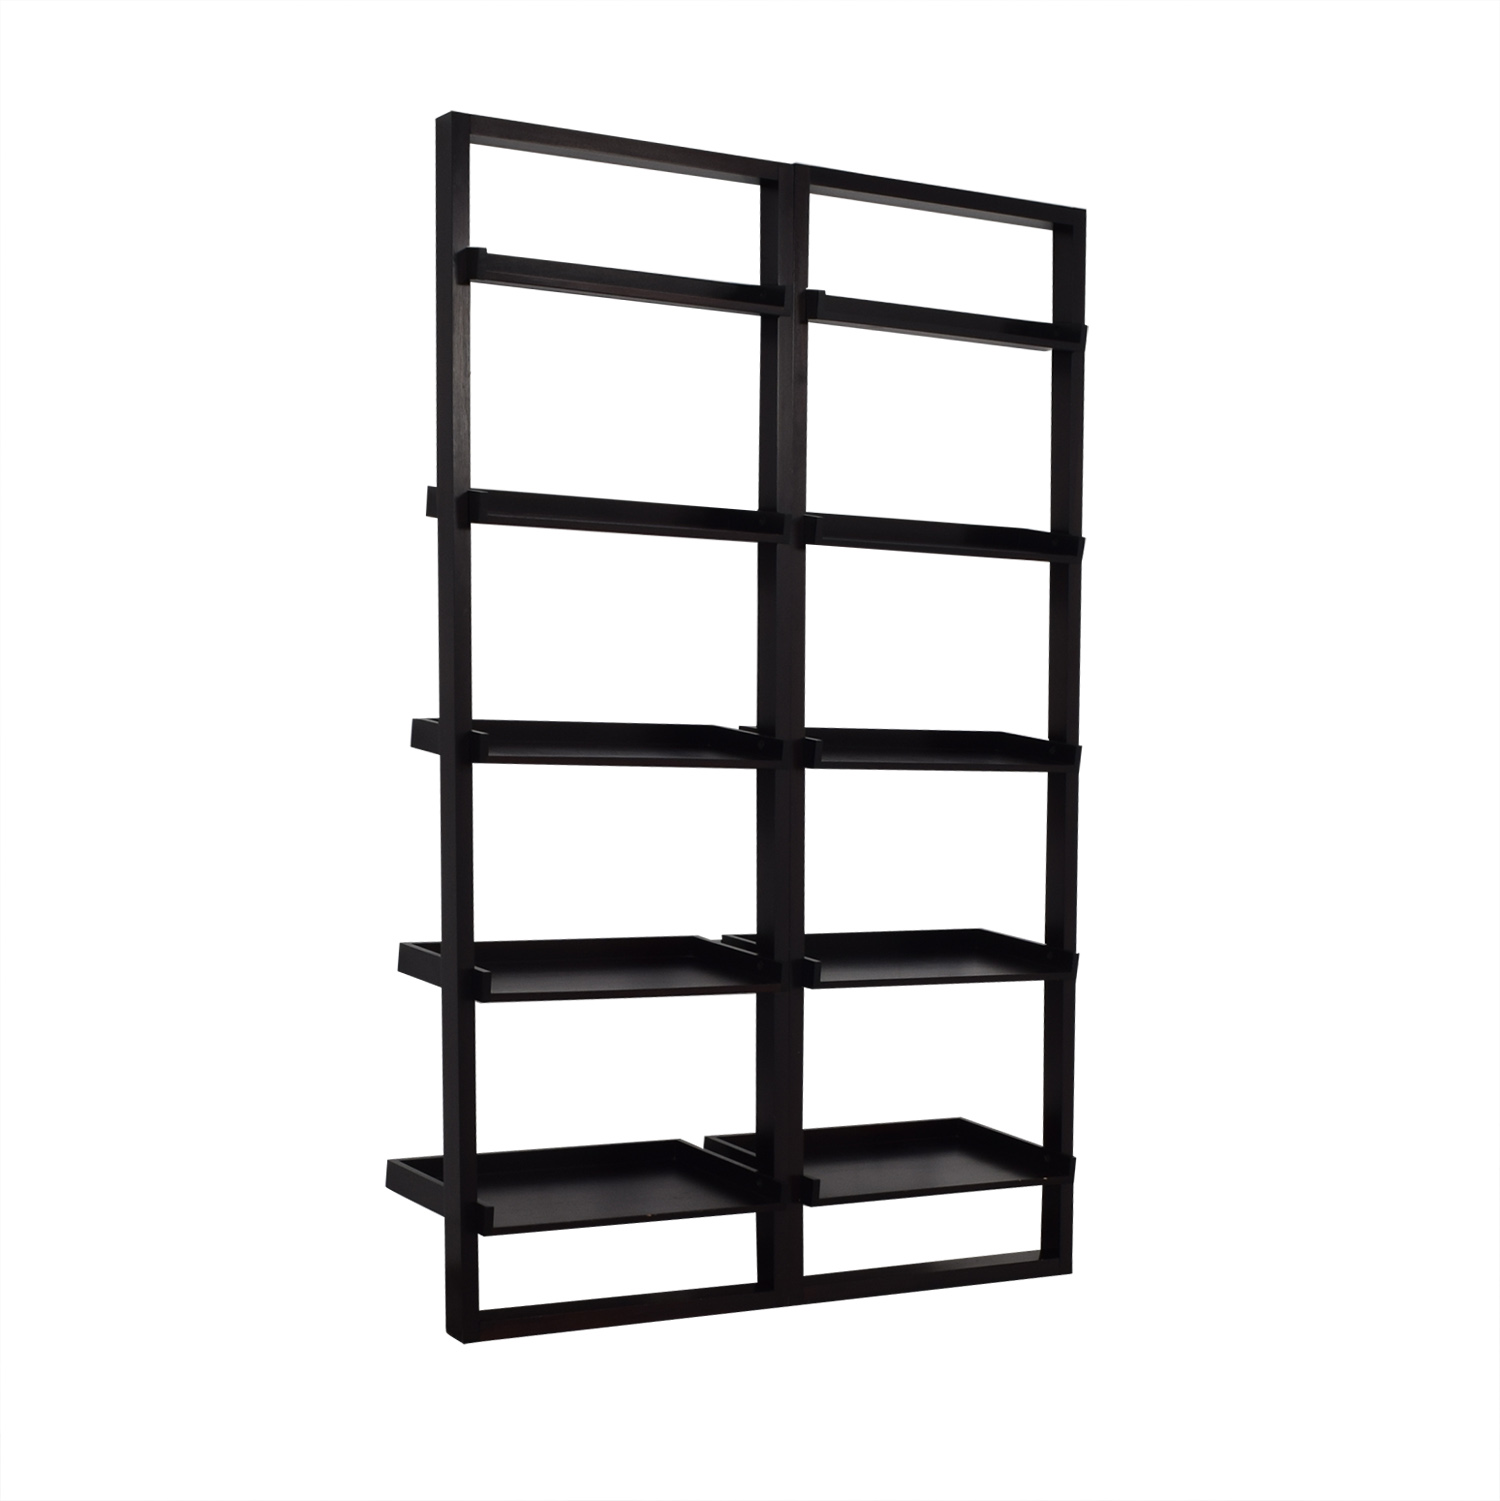 Crate & Barrel Crate &  Barrel Sawyer Leaning Shelves used